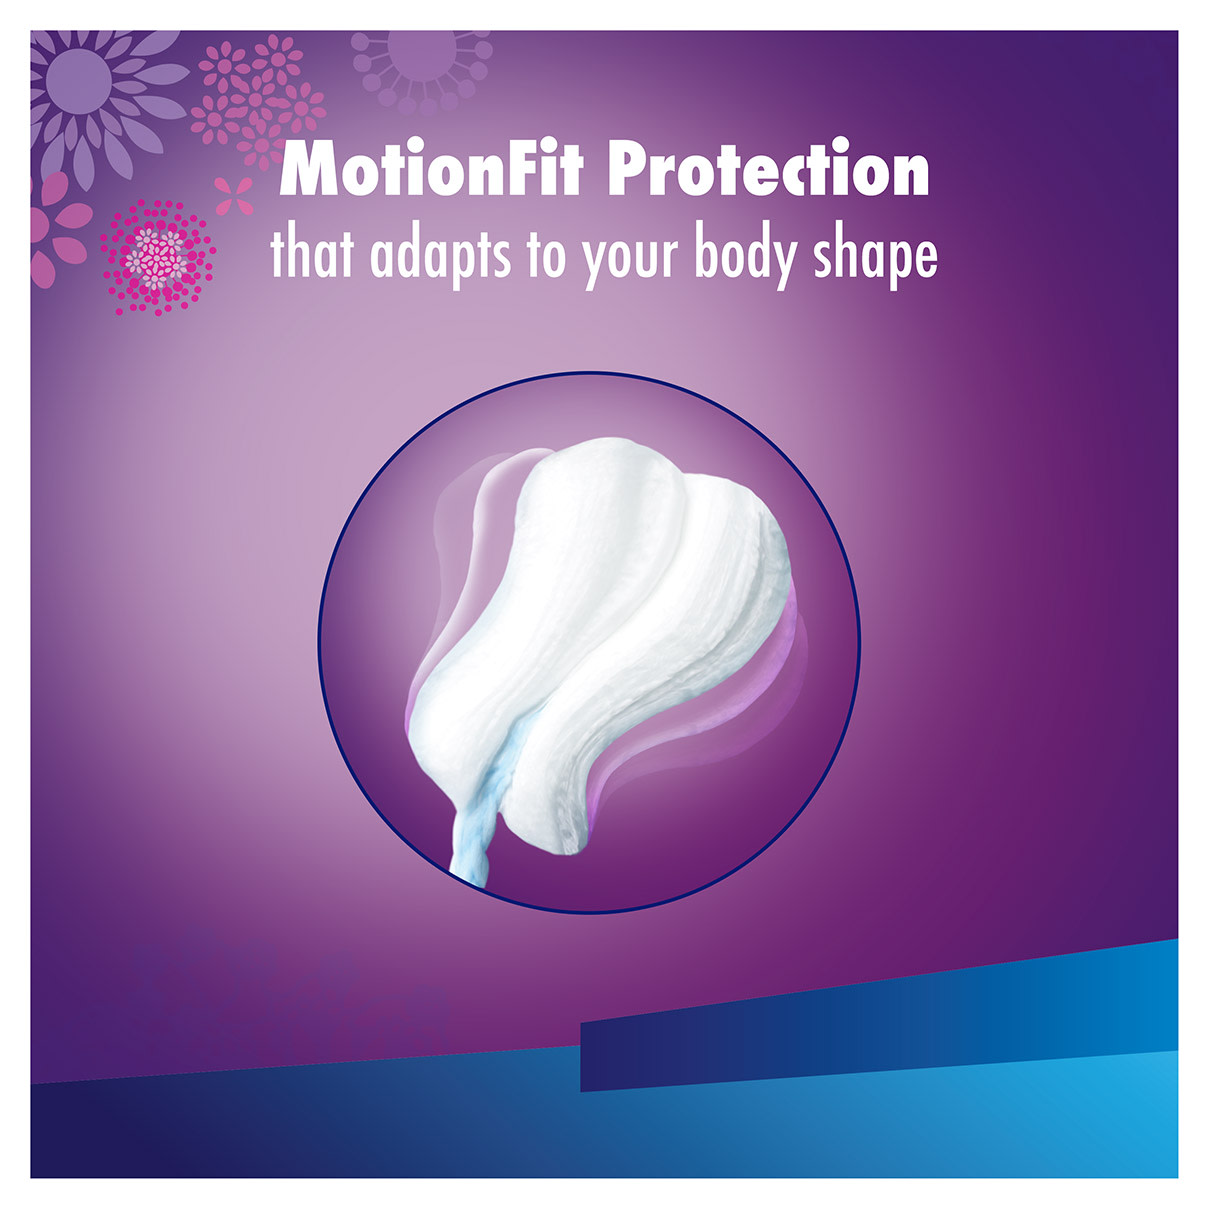 MotionFit Protection that adopts to your body shape